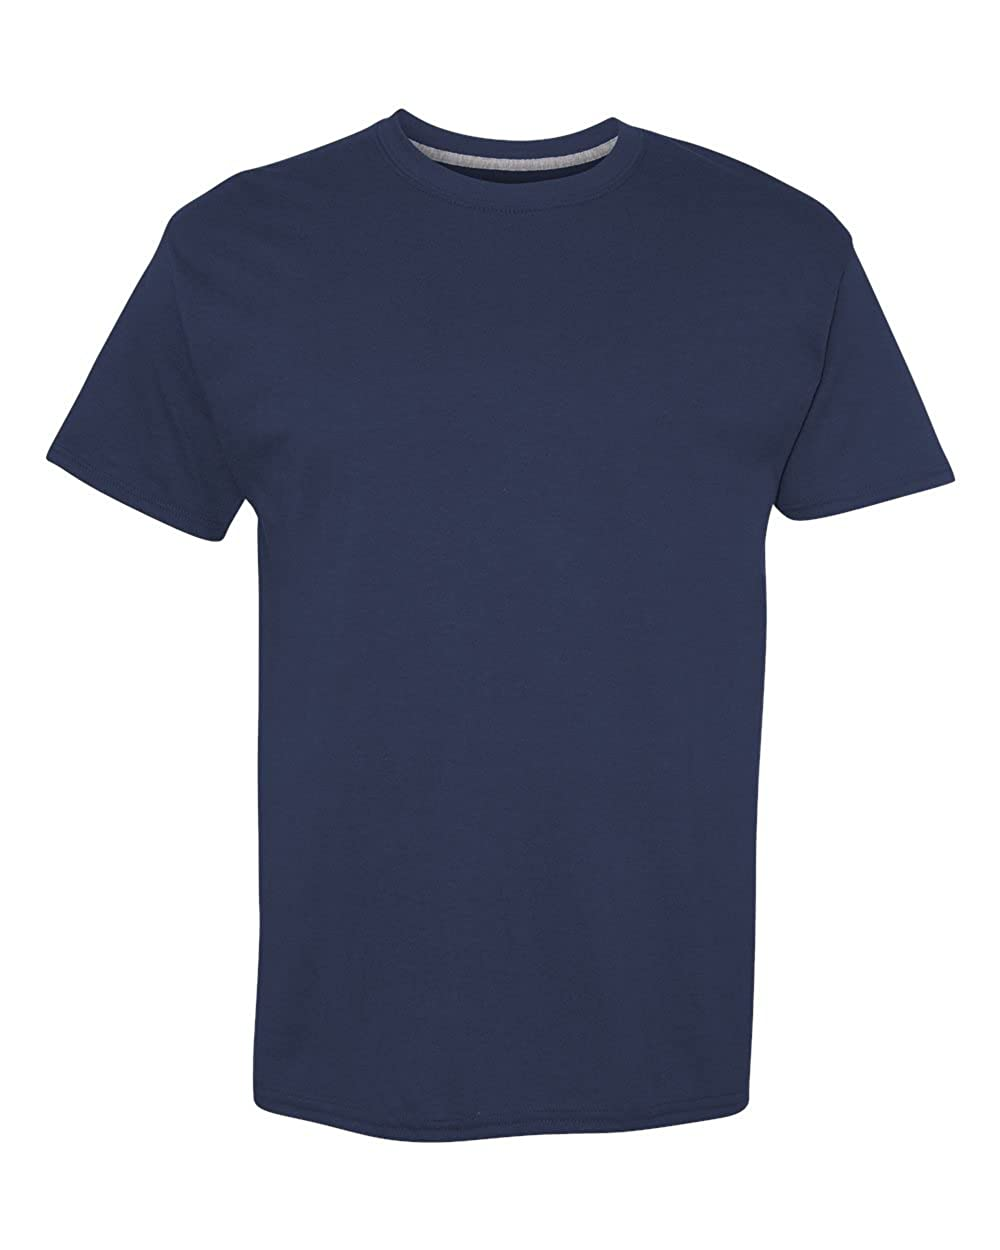 Hanes X-Temp Performance Short Sleeve T-Shirt 2861